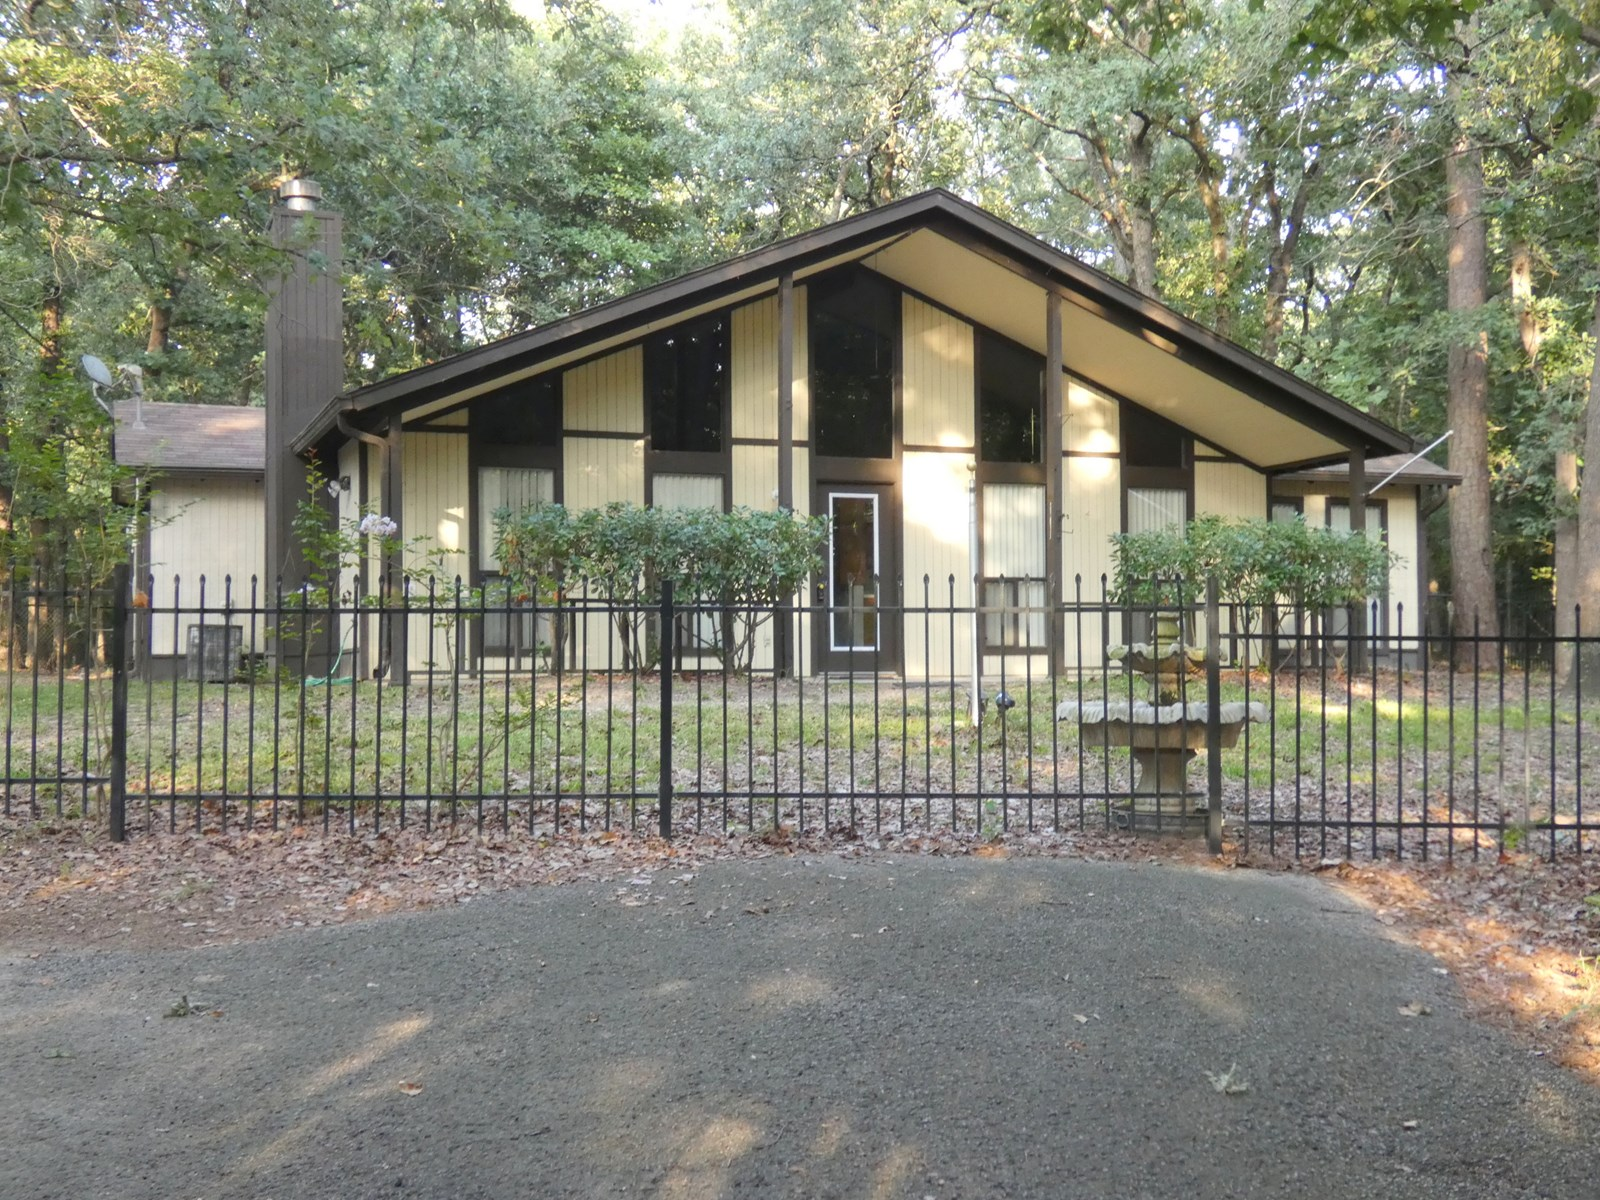 HOLLY LAKE RANCH GATED HOME, WOOD COUNTY, EAST TEXAS